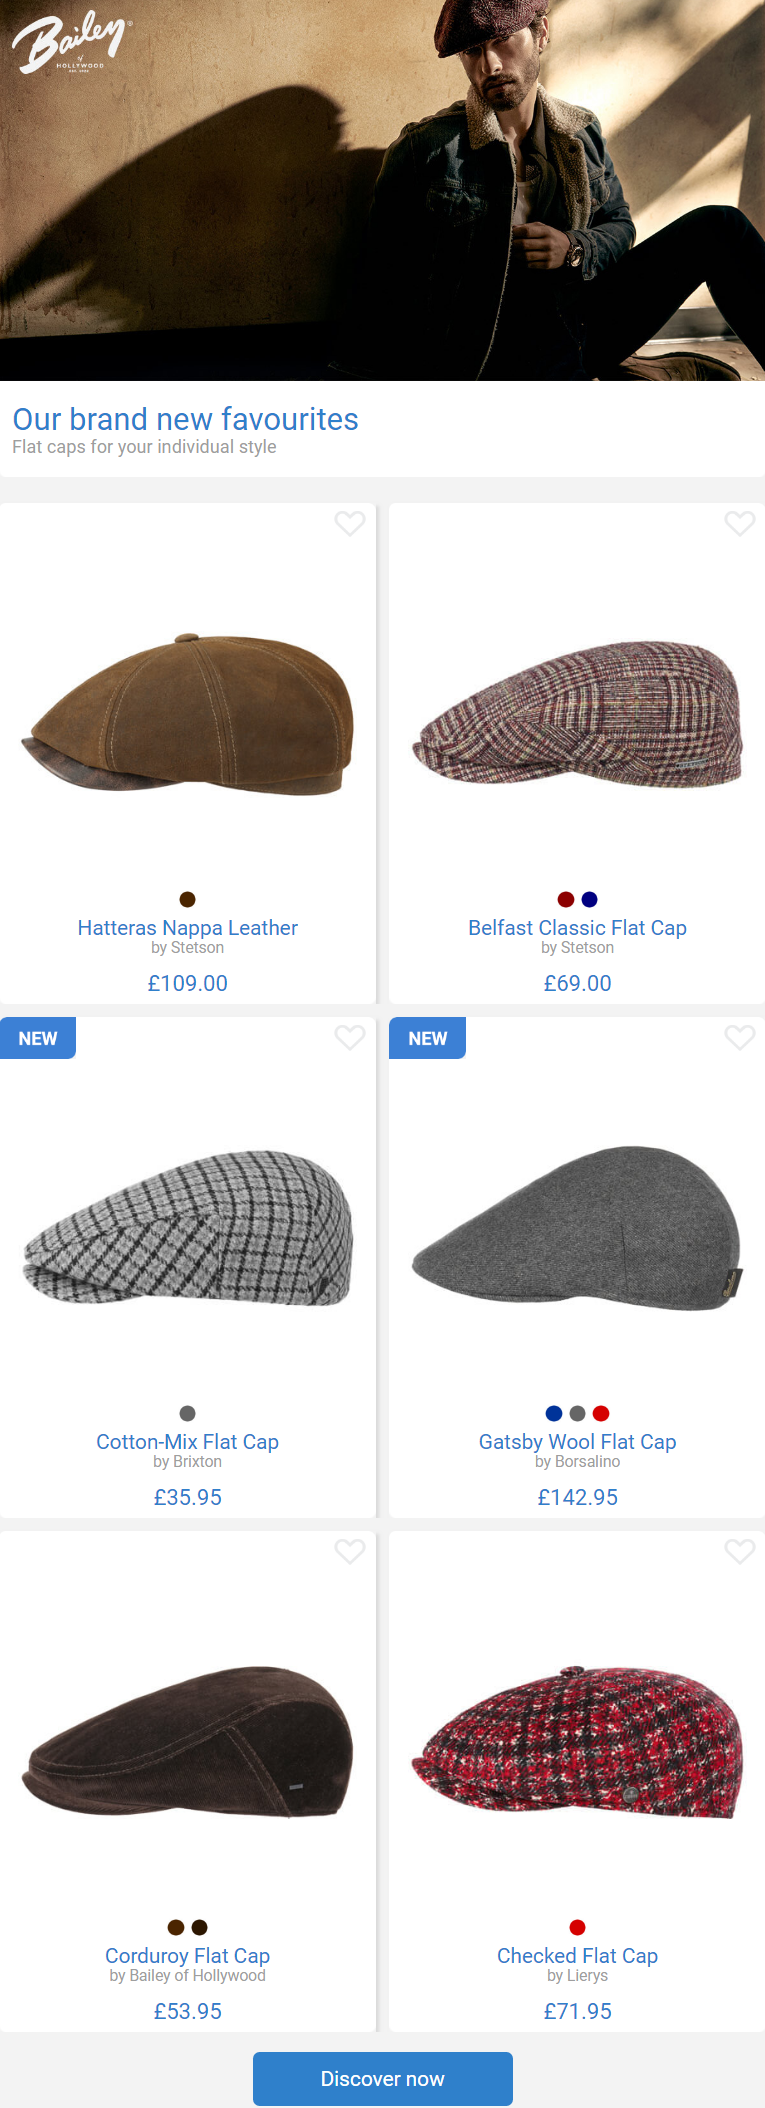 Flat caps for your individual style.